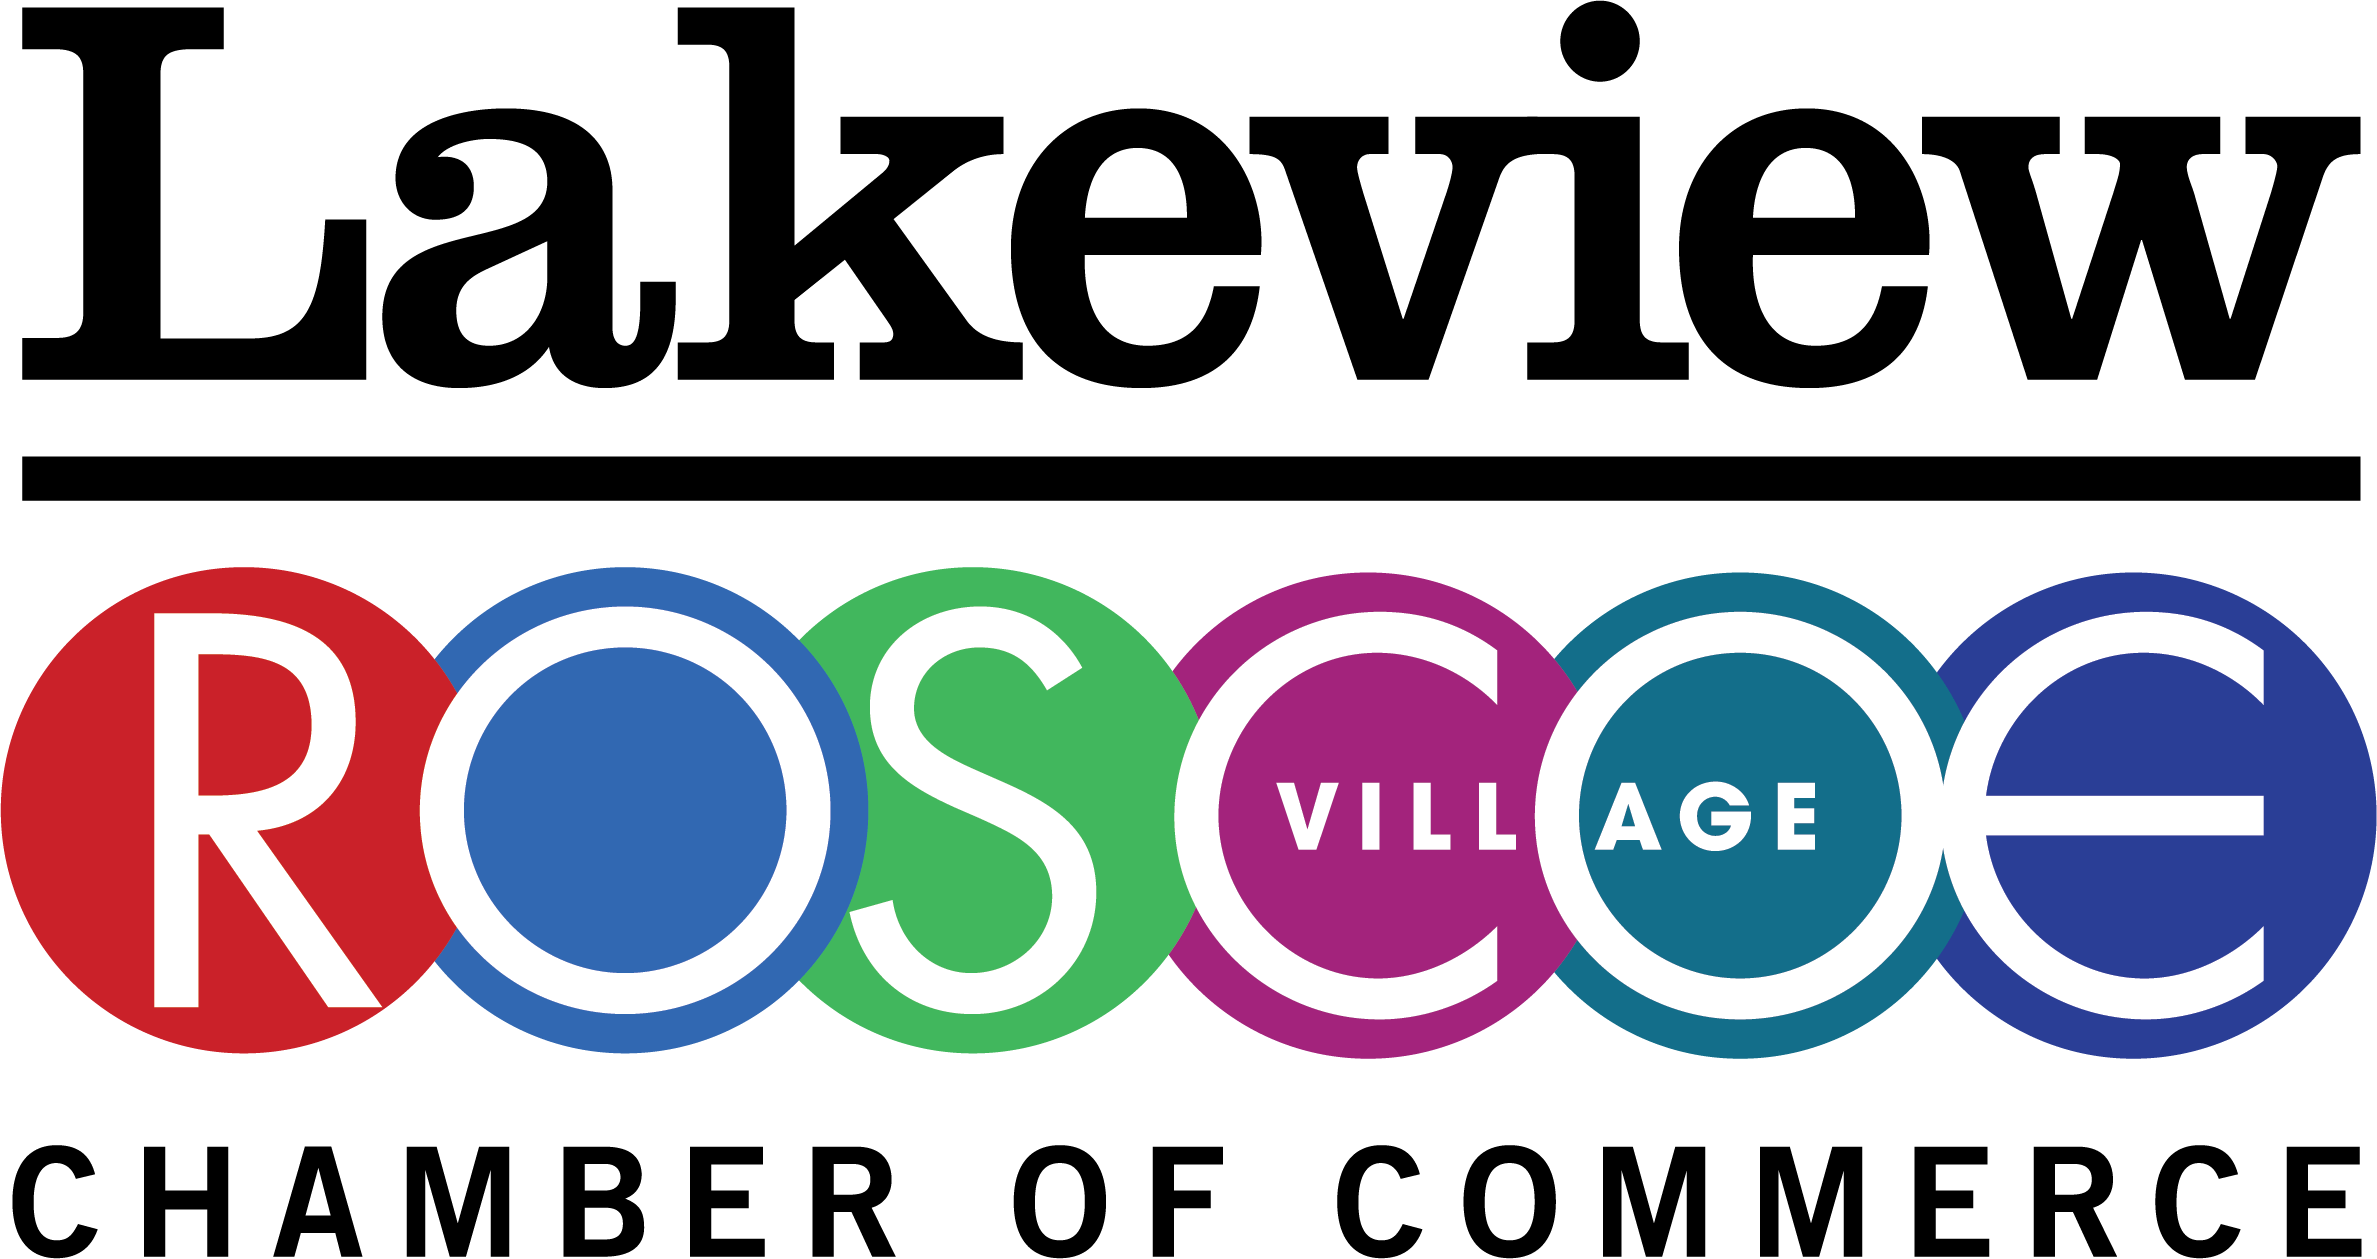 Lakeview Roscoe Village Chamber of Commerce Logo